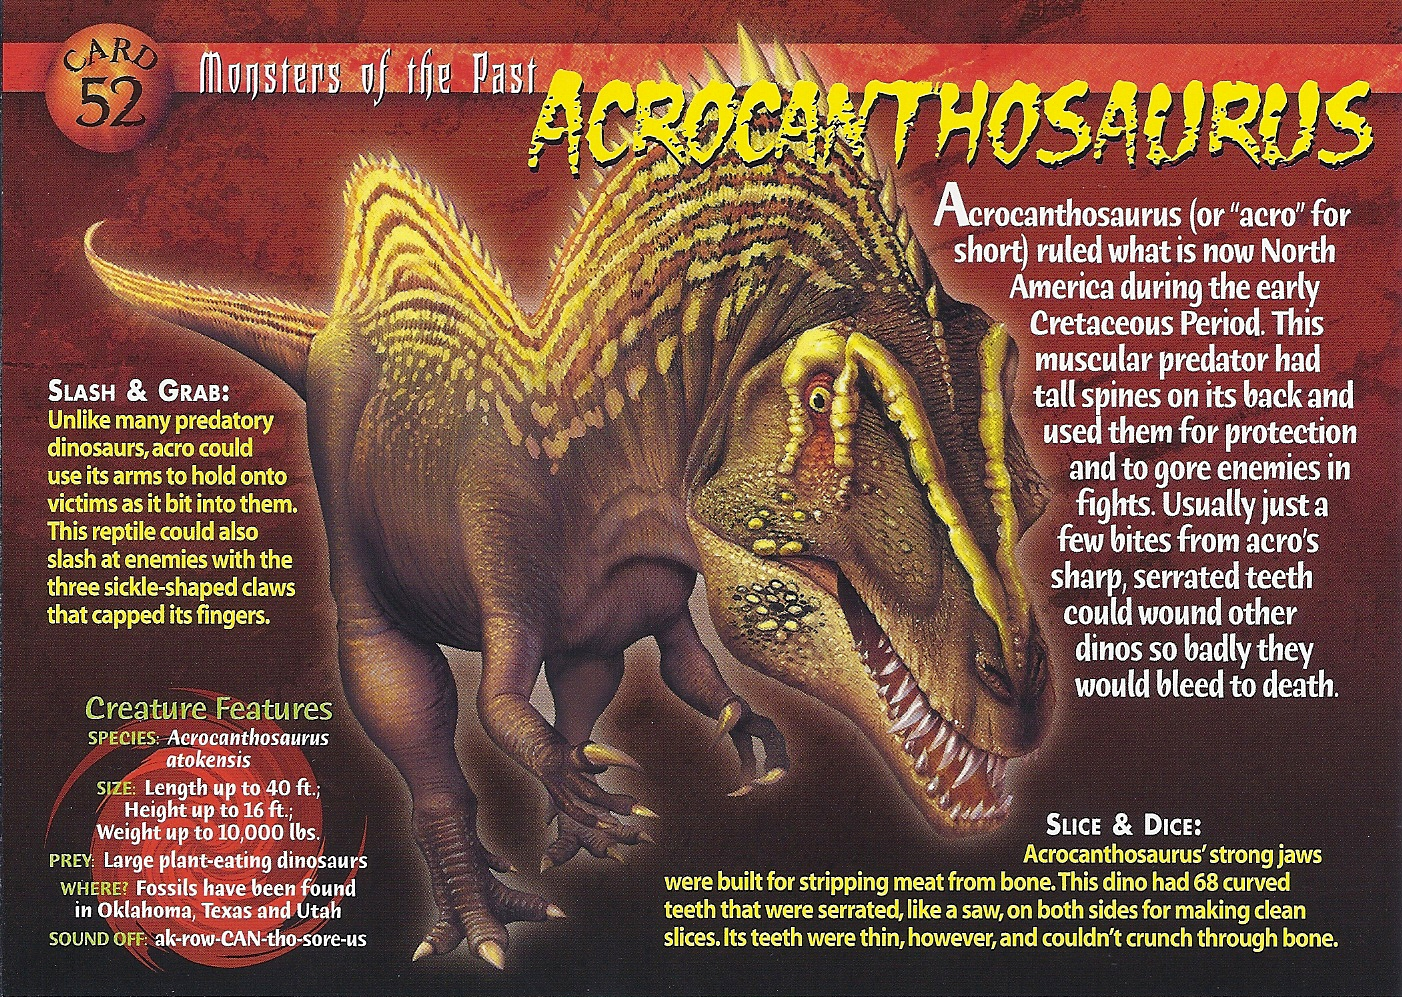 Acrocanthosaurus | Wierd N'wild Creatures Wiki | FANDOM powered by ...